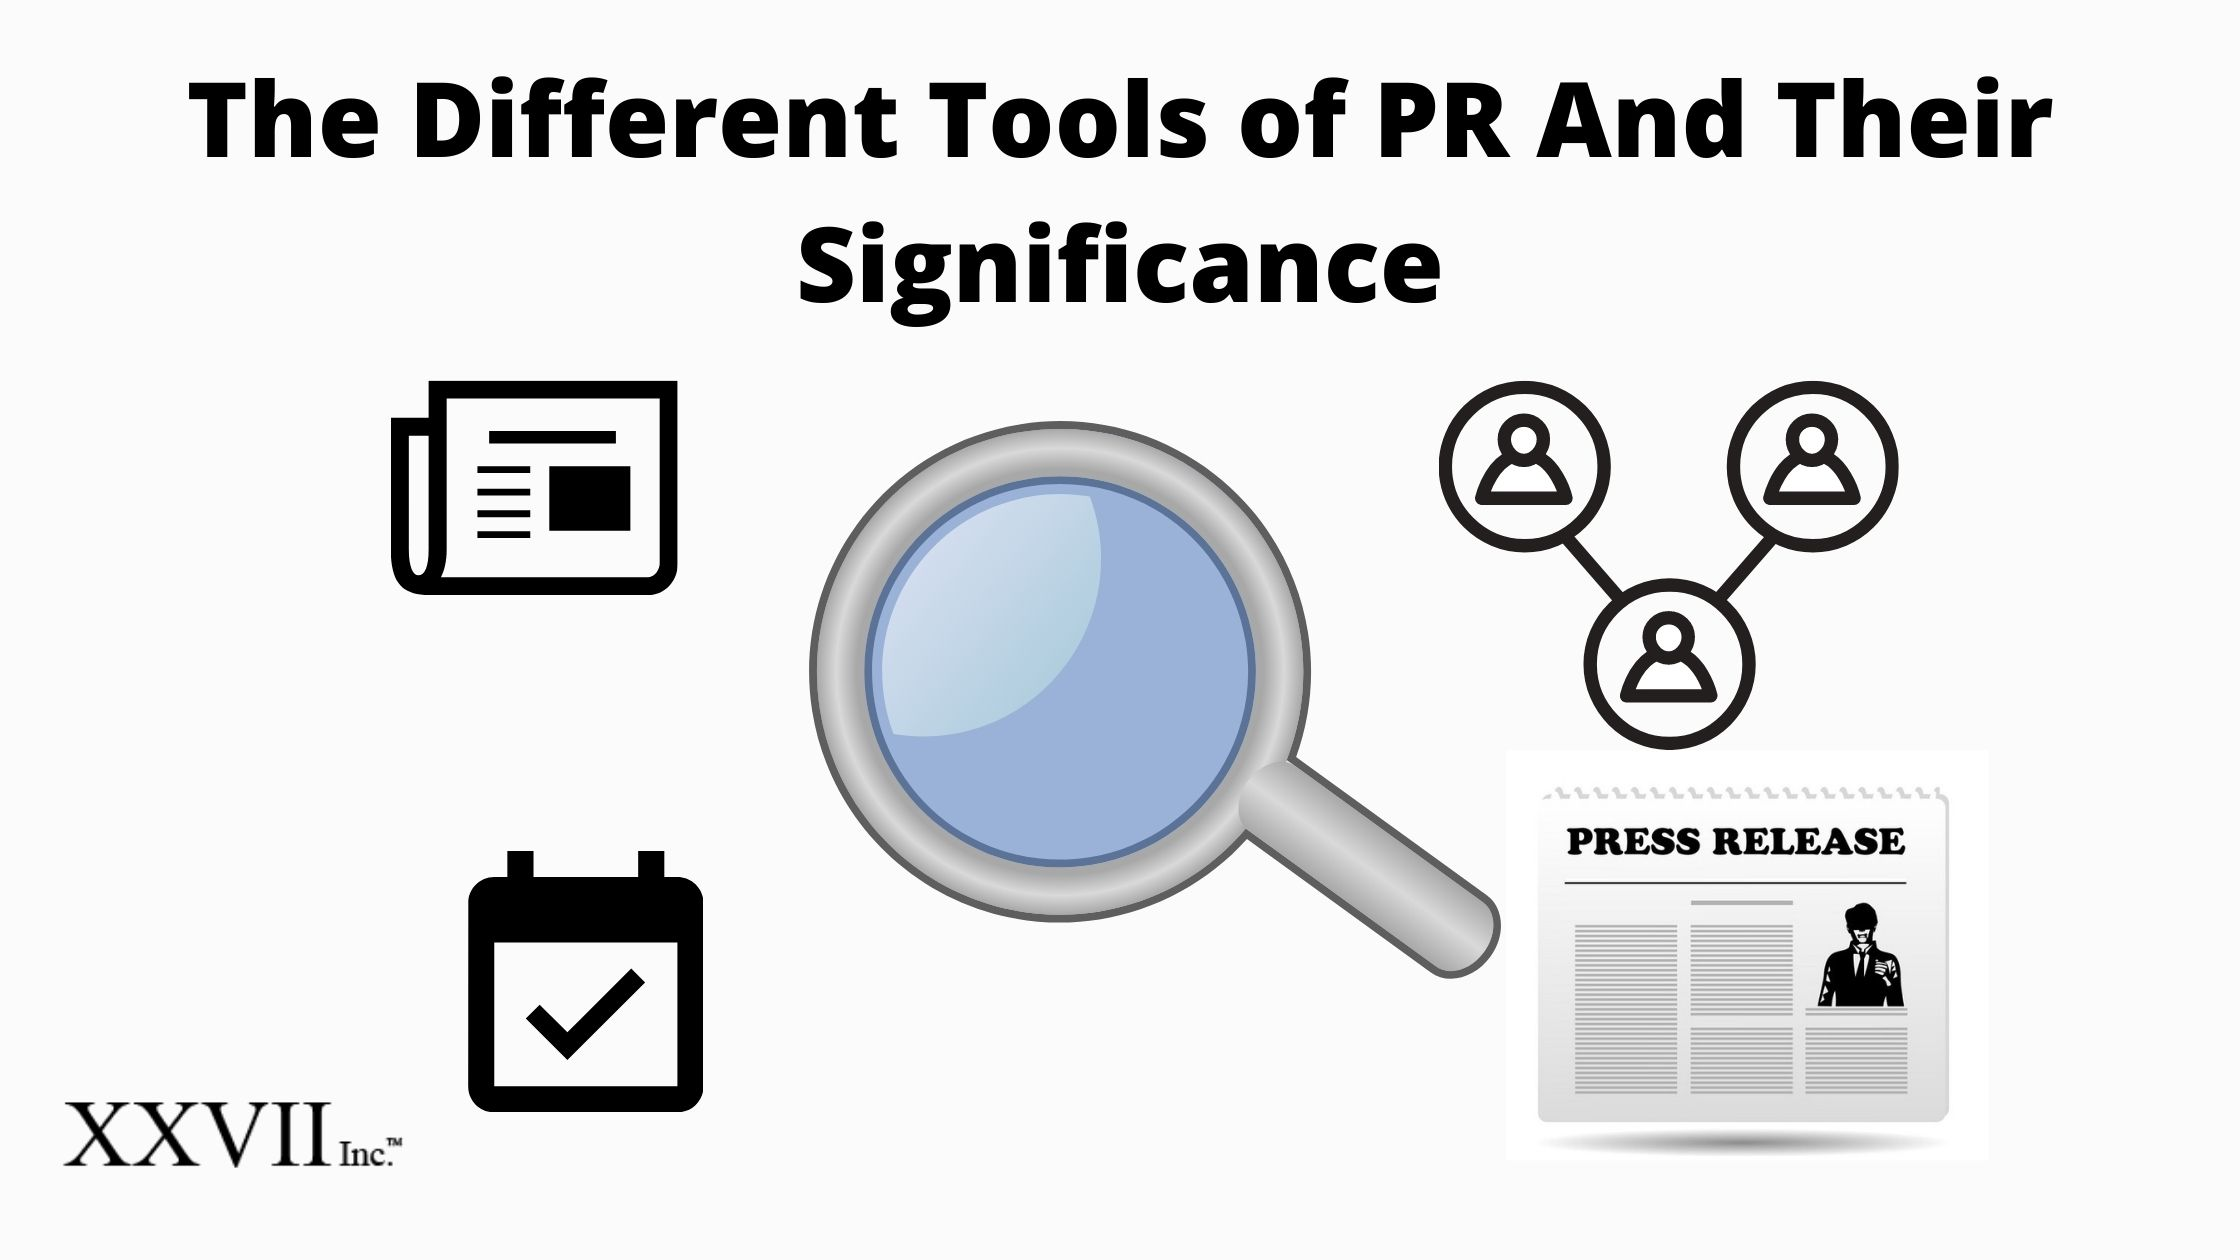 The Different Tools of PR And Their Significance